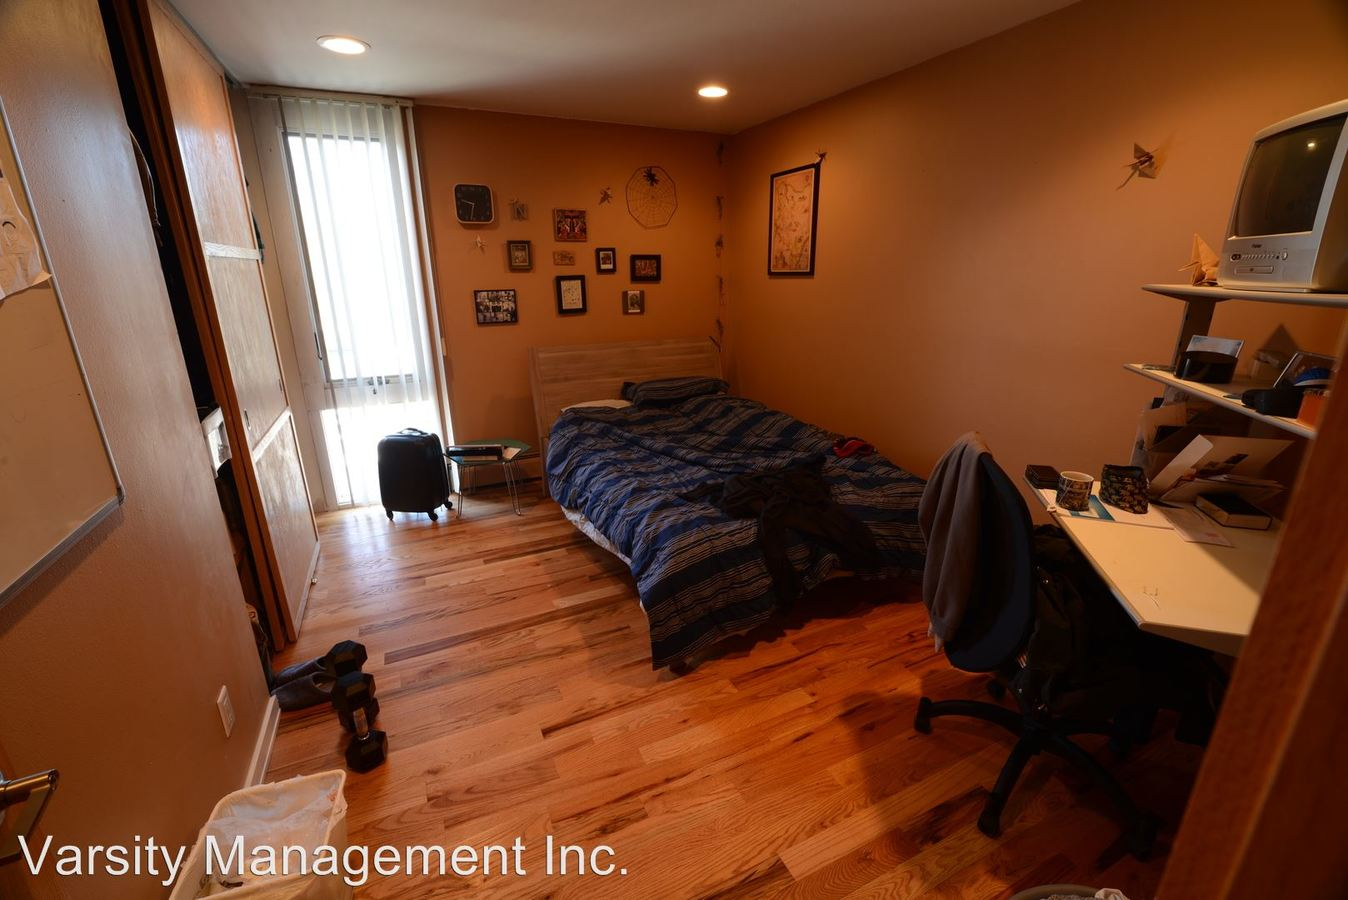 2 Bedrooms 1 Bathroom Apartment for rent at 1015 W. Huron in Ann Arbor, MI